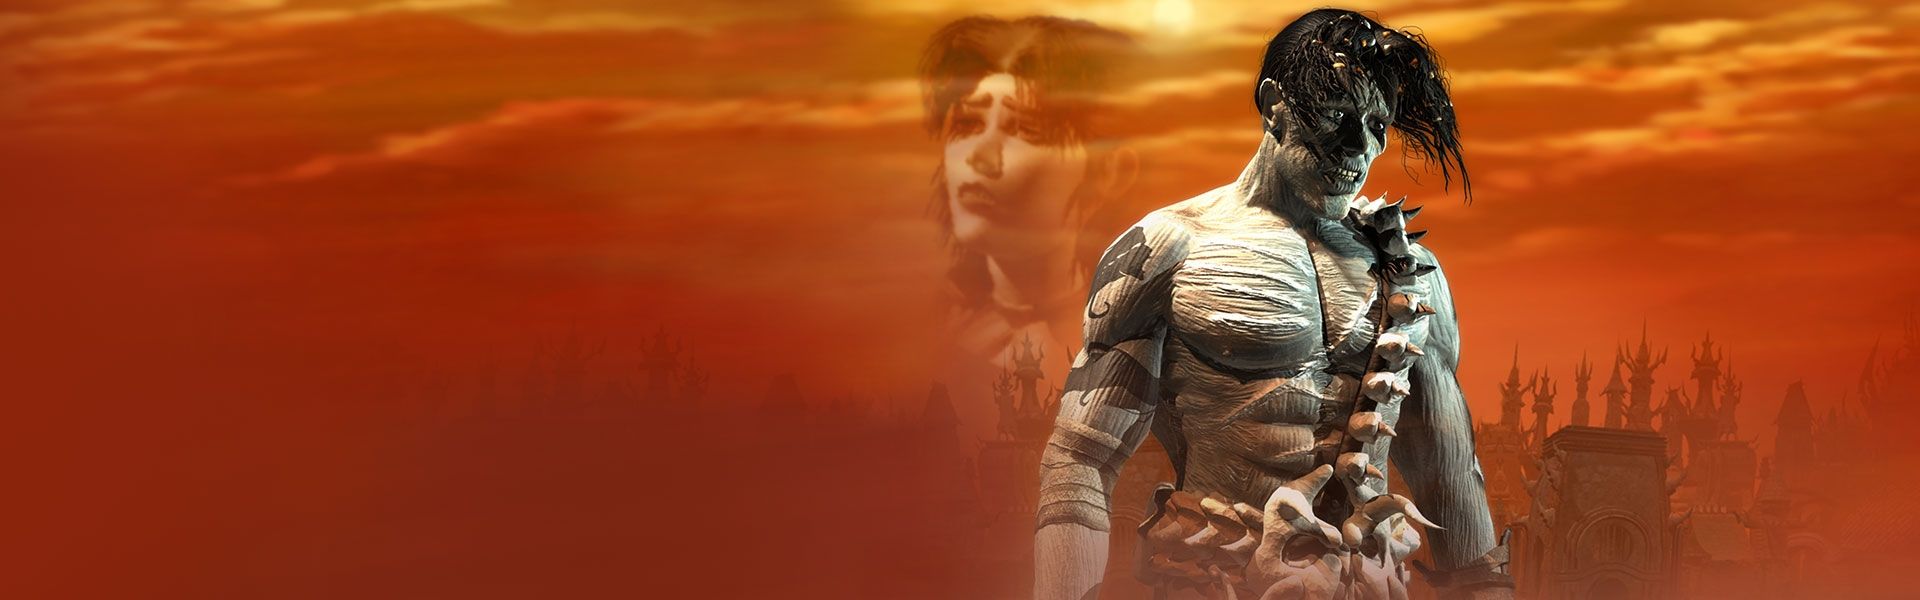 Nameless One, Planescape Torment Enhanced Edition Promotional Banner